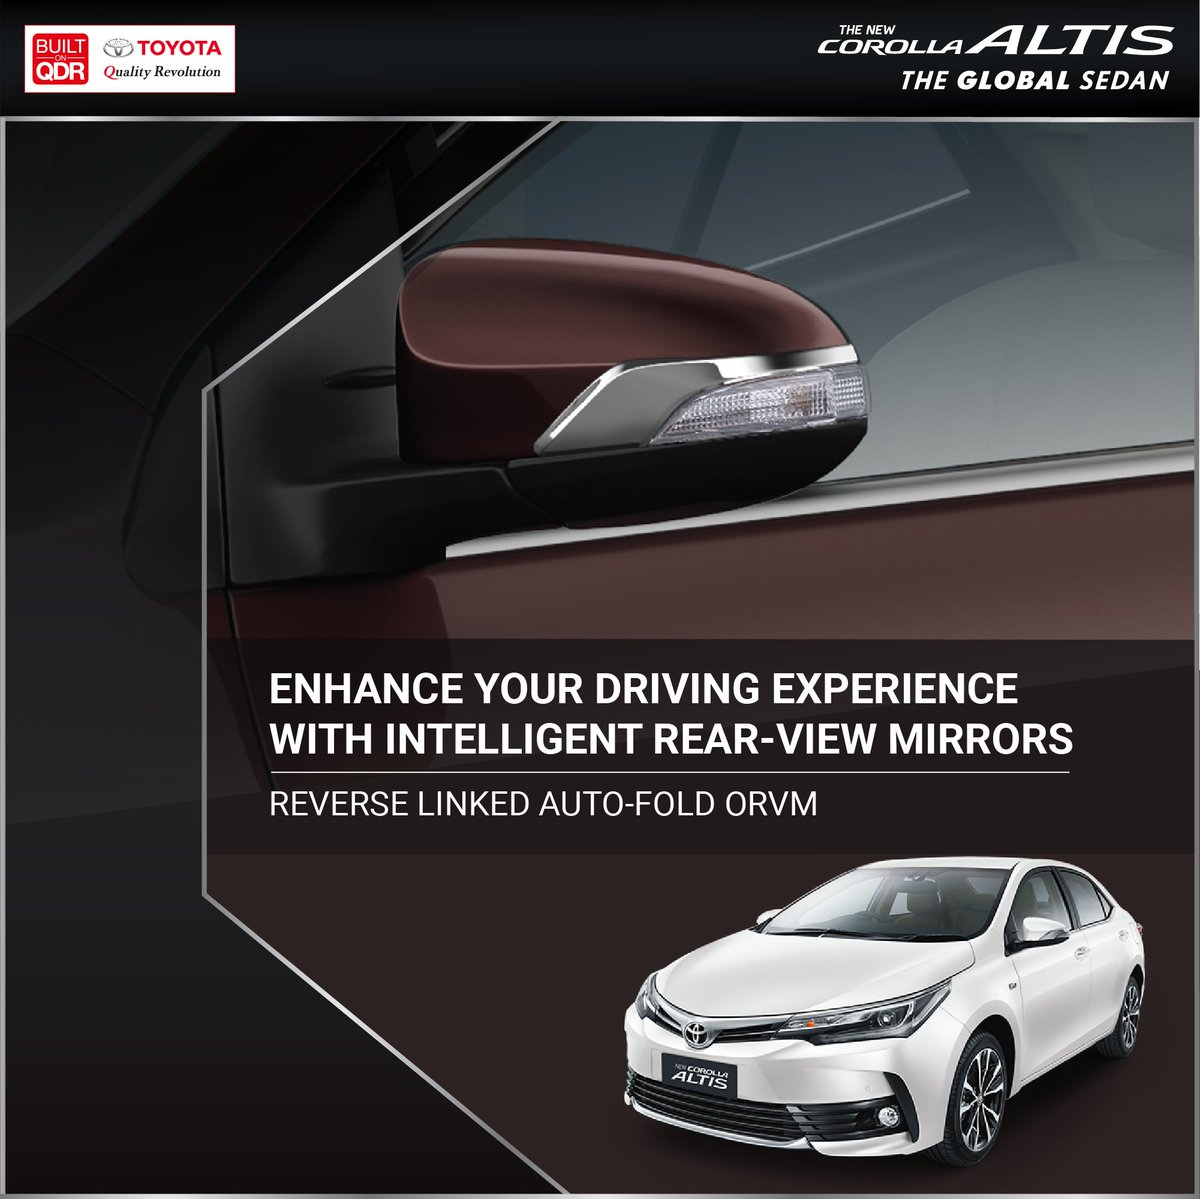 Once you are aboard the #Toyota #CorollaAltis, there's no turning back. Book a test drive today! Visit: https://t.co/8IrjY8cSmk. #Theglobalsedan https://t.co/2HaQdzesqX